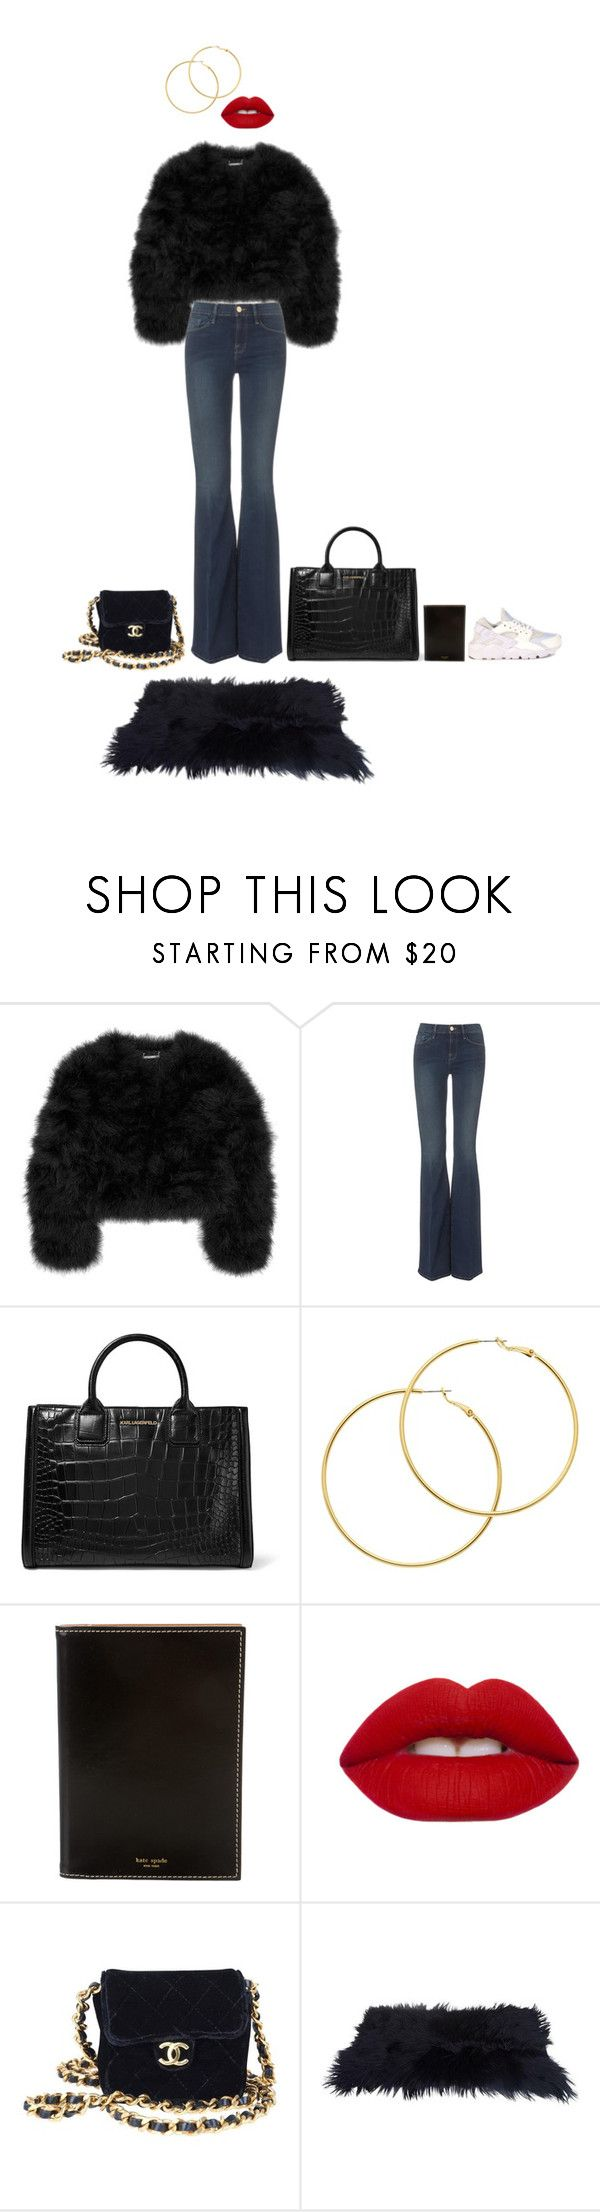 """""""Untitled #5"""" by aicaia ❤ liked on Polyvore featuring Diane Von Furstenberg, Frame, Karl Lagerfeld, Melissa Odabash, Kate Spade, Lime Crime, Chanel, NIKE, Fall and autumn"""